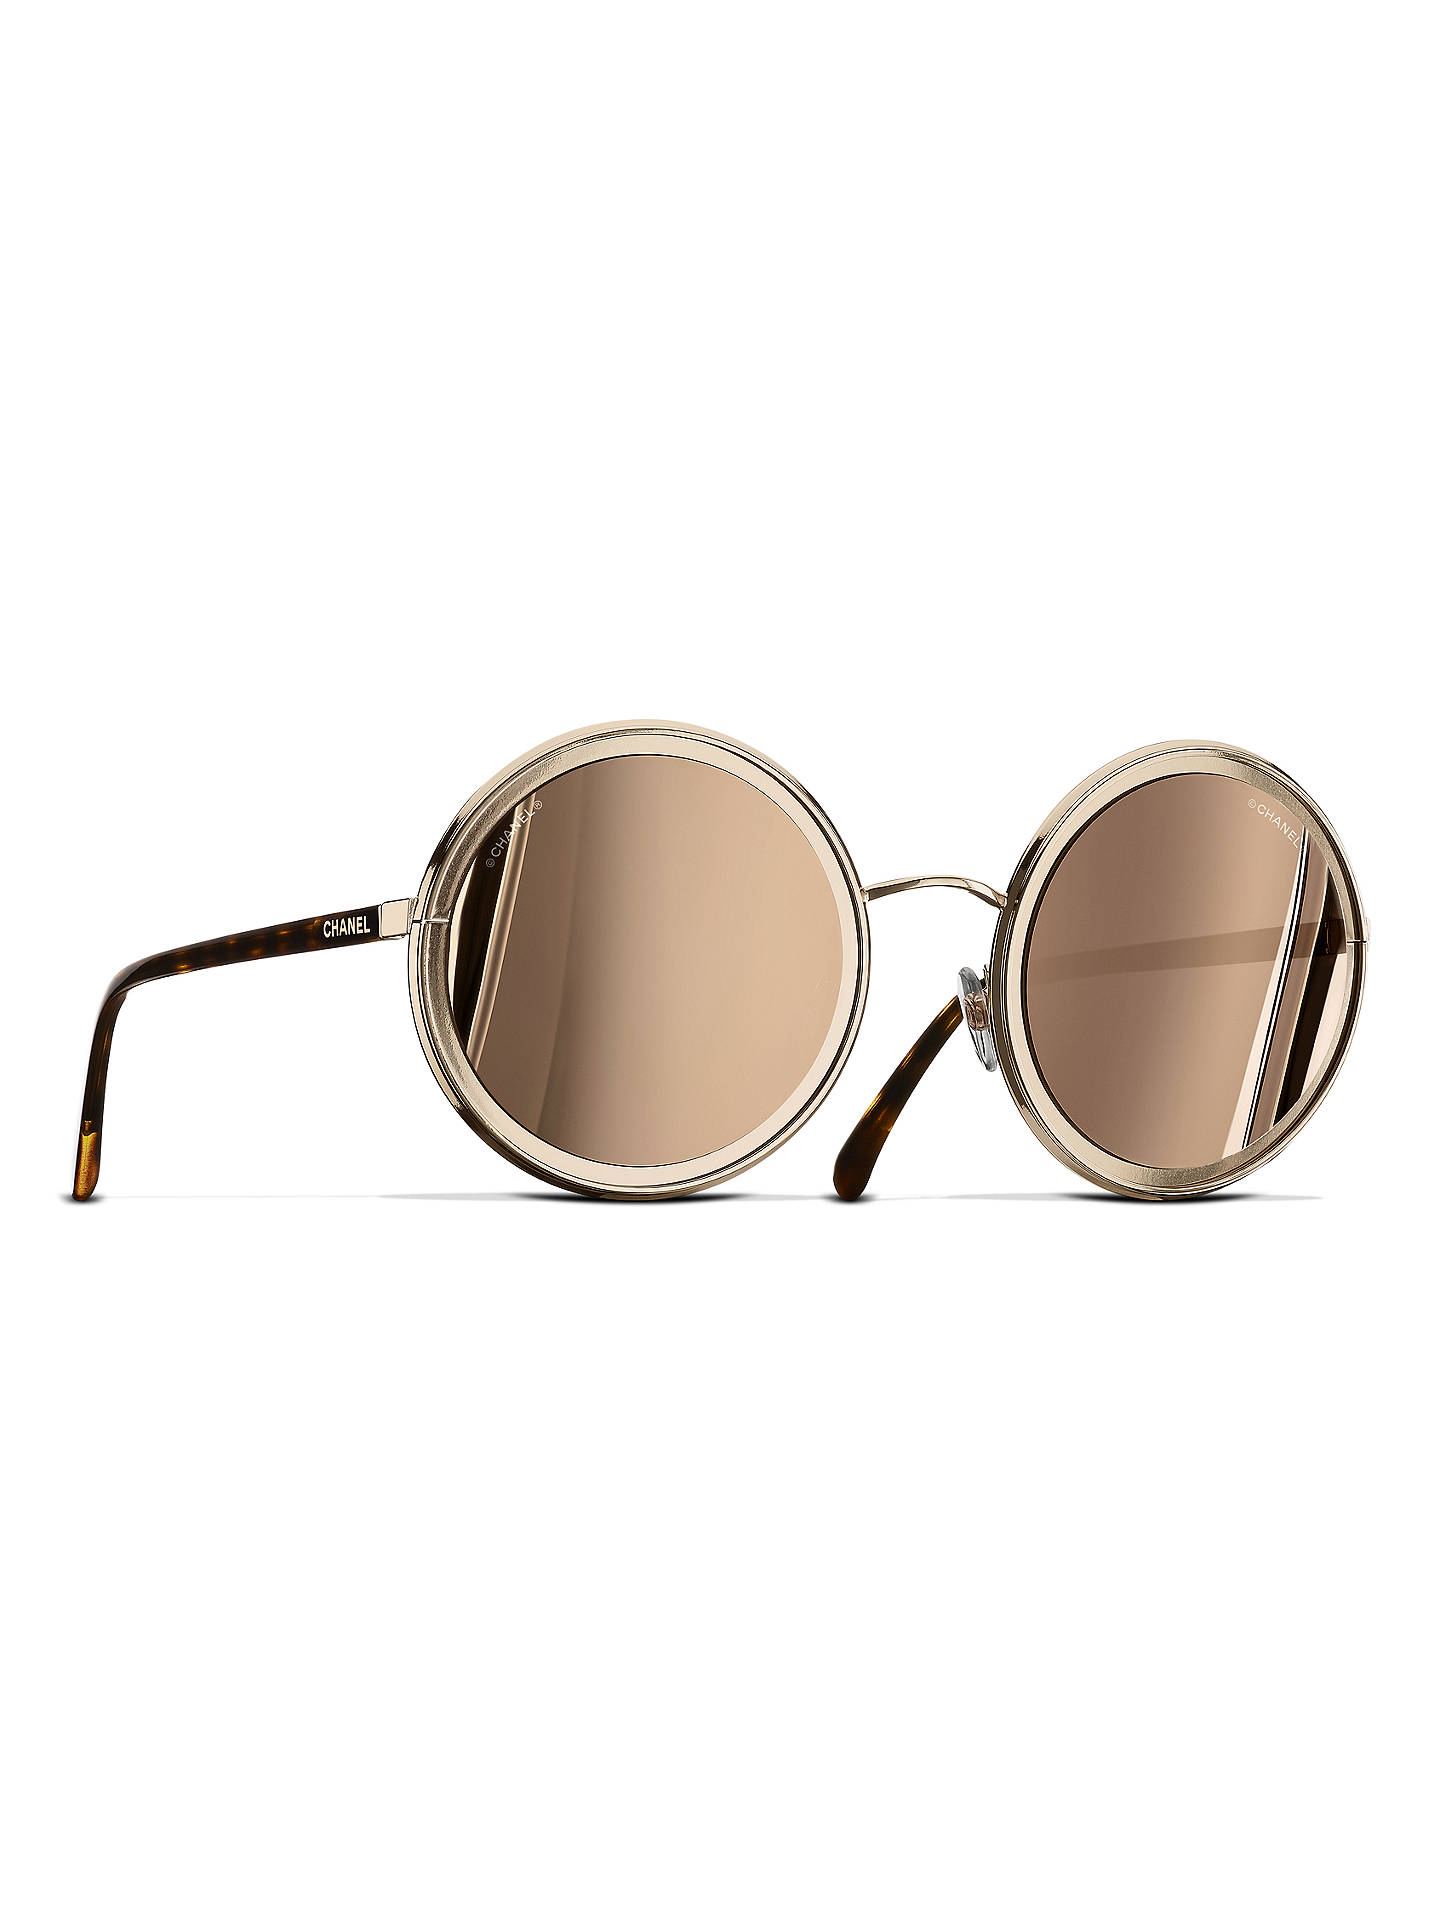 787c82a2cf Buy CHANEL Round Sunglasses CH4226 Gold Online at johnlewis.com ...